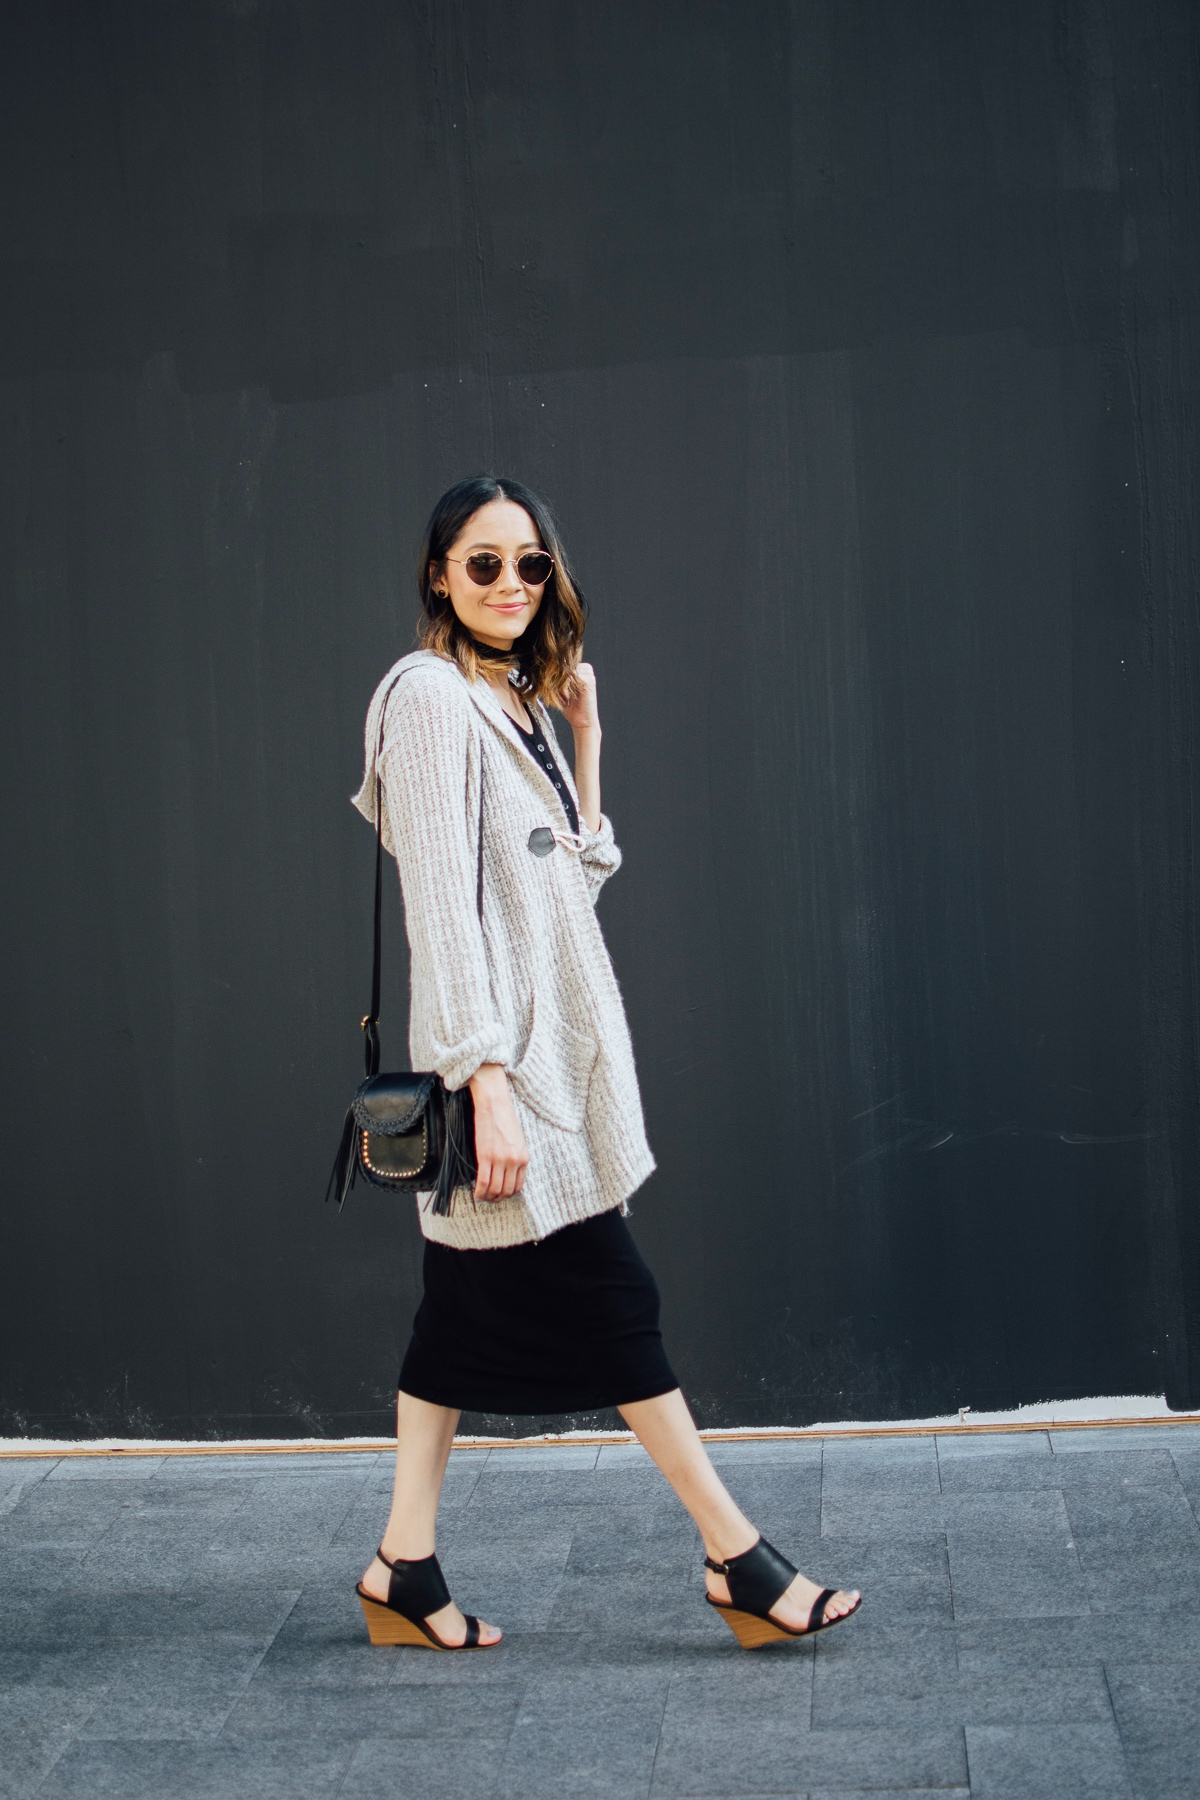 Daily Craving wearing a cozy midi cardigan with a black midi dress and wedge sandals